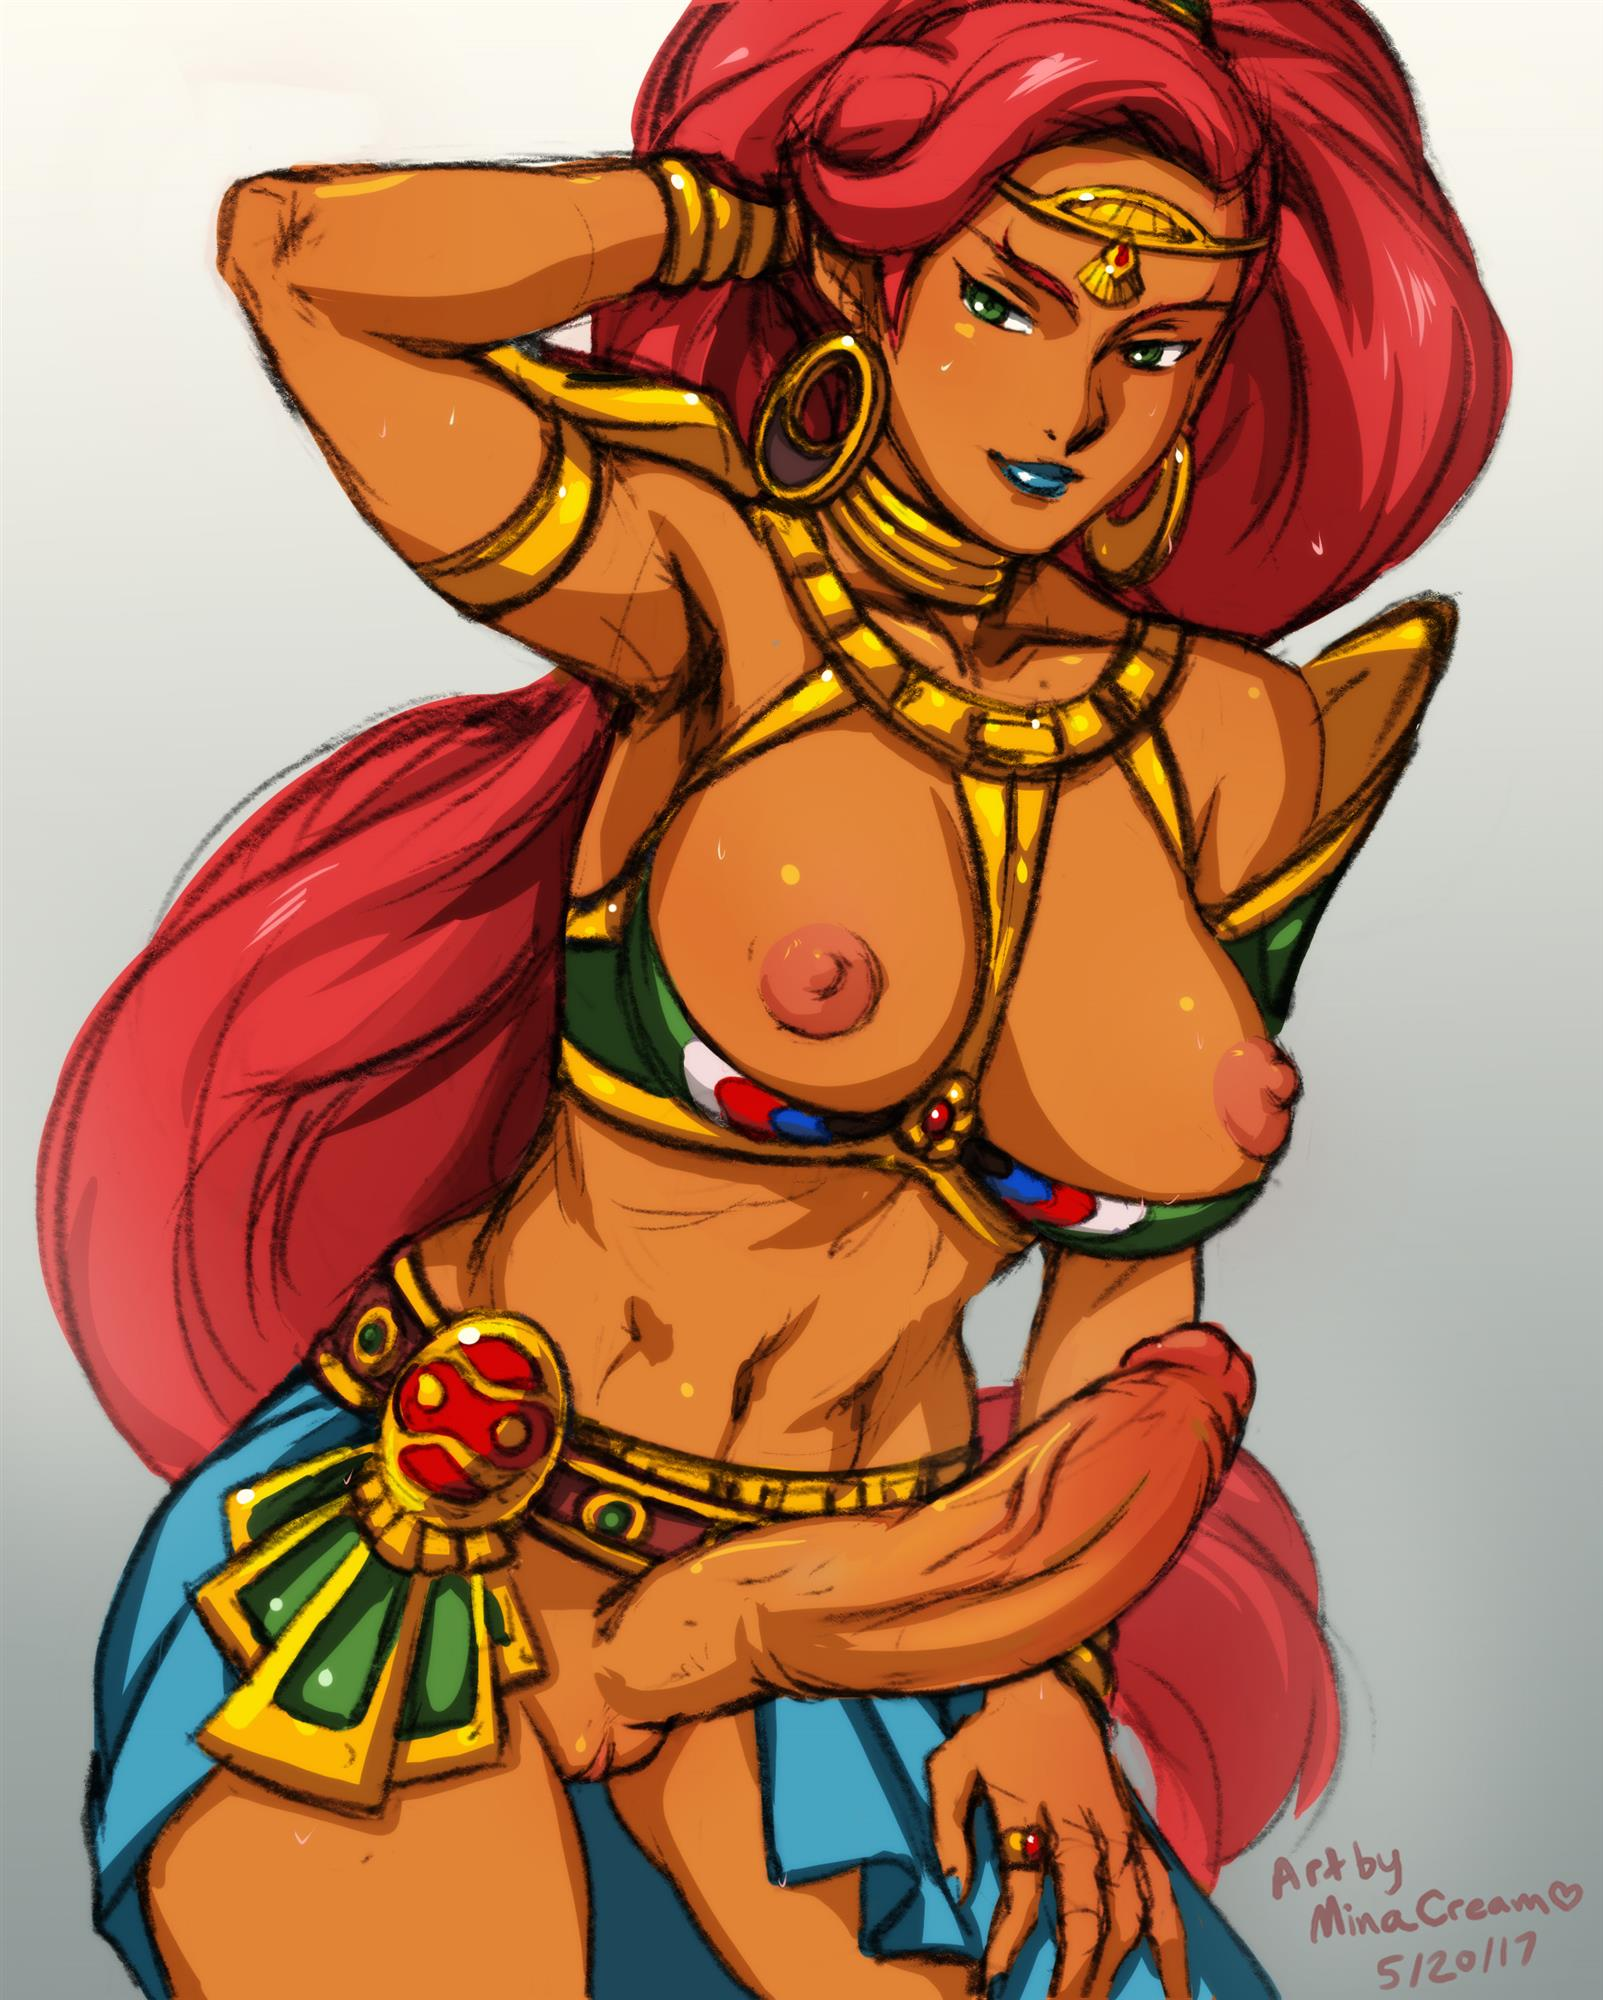 Nude Urbosa has a long erect curvy dick